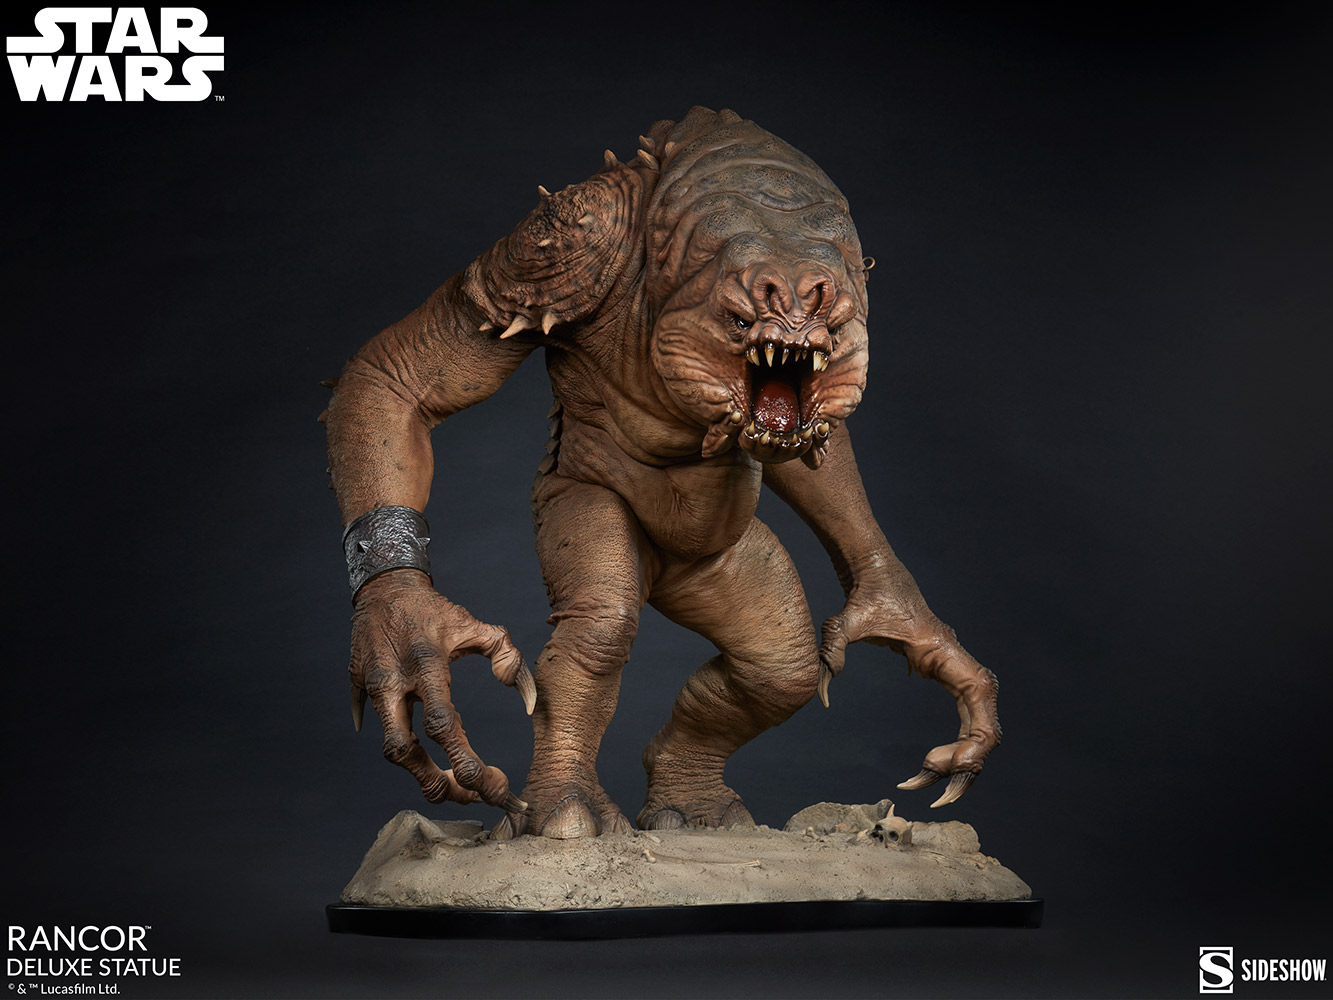 Link a Rancor-Deluxe-Statue-Star-Wars-collectibles-6